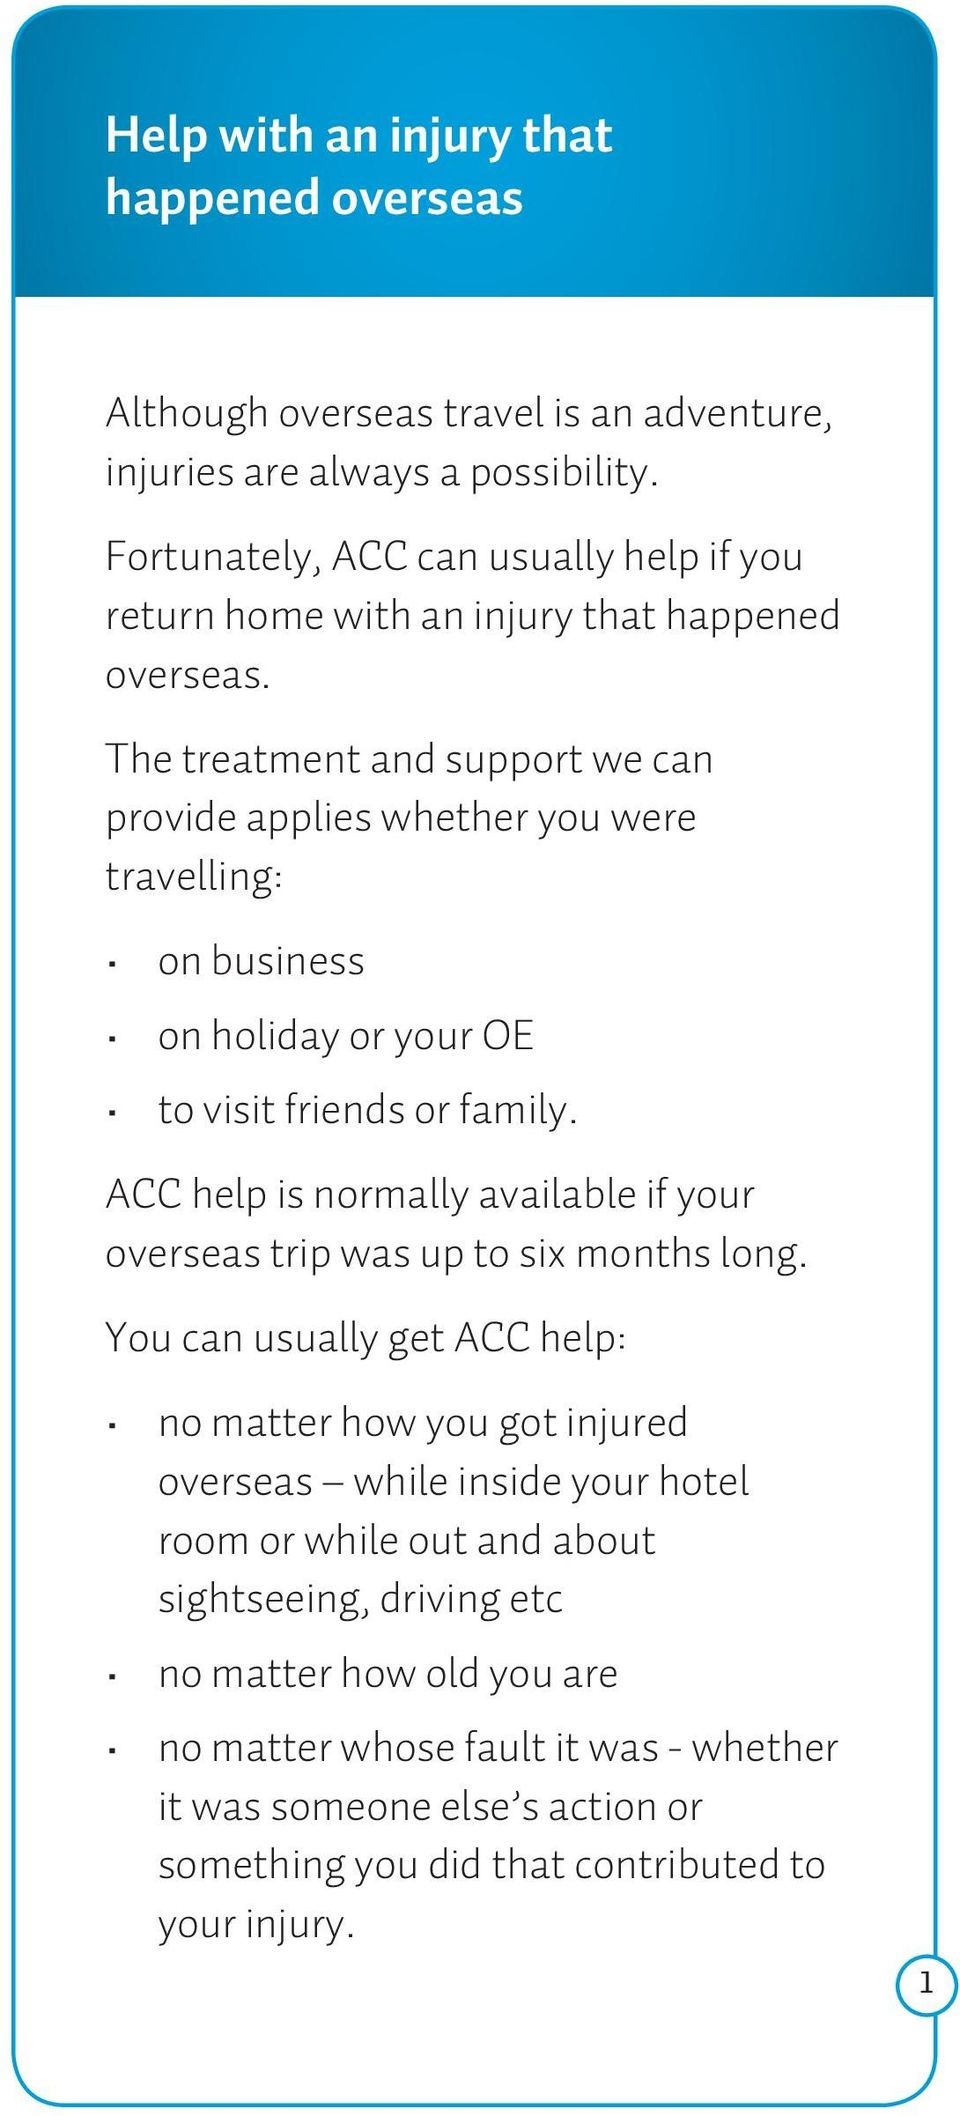 The treatment and support we can provide applies whether you were travelling: on business on holiday or your OE to visit friends or family.